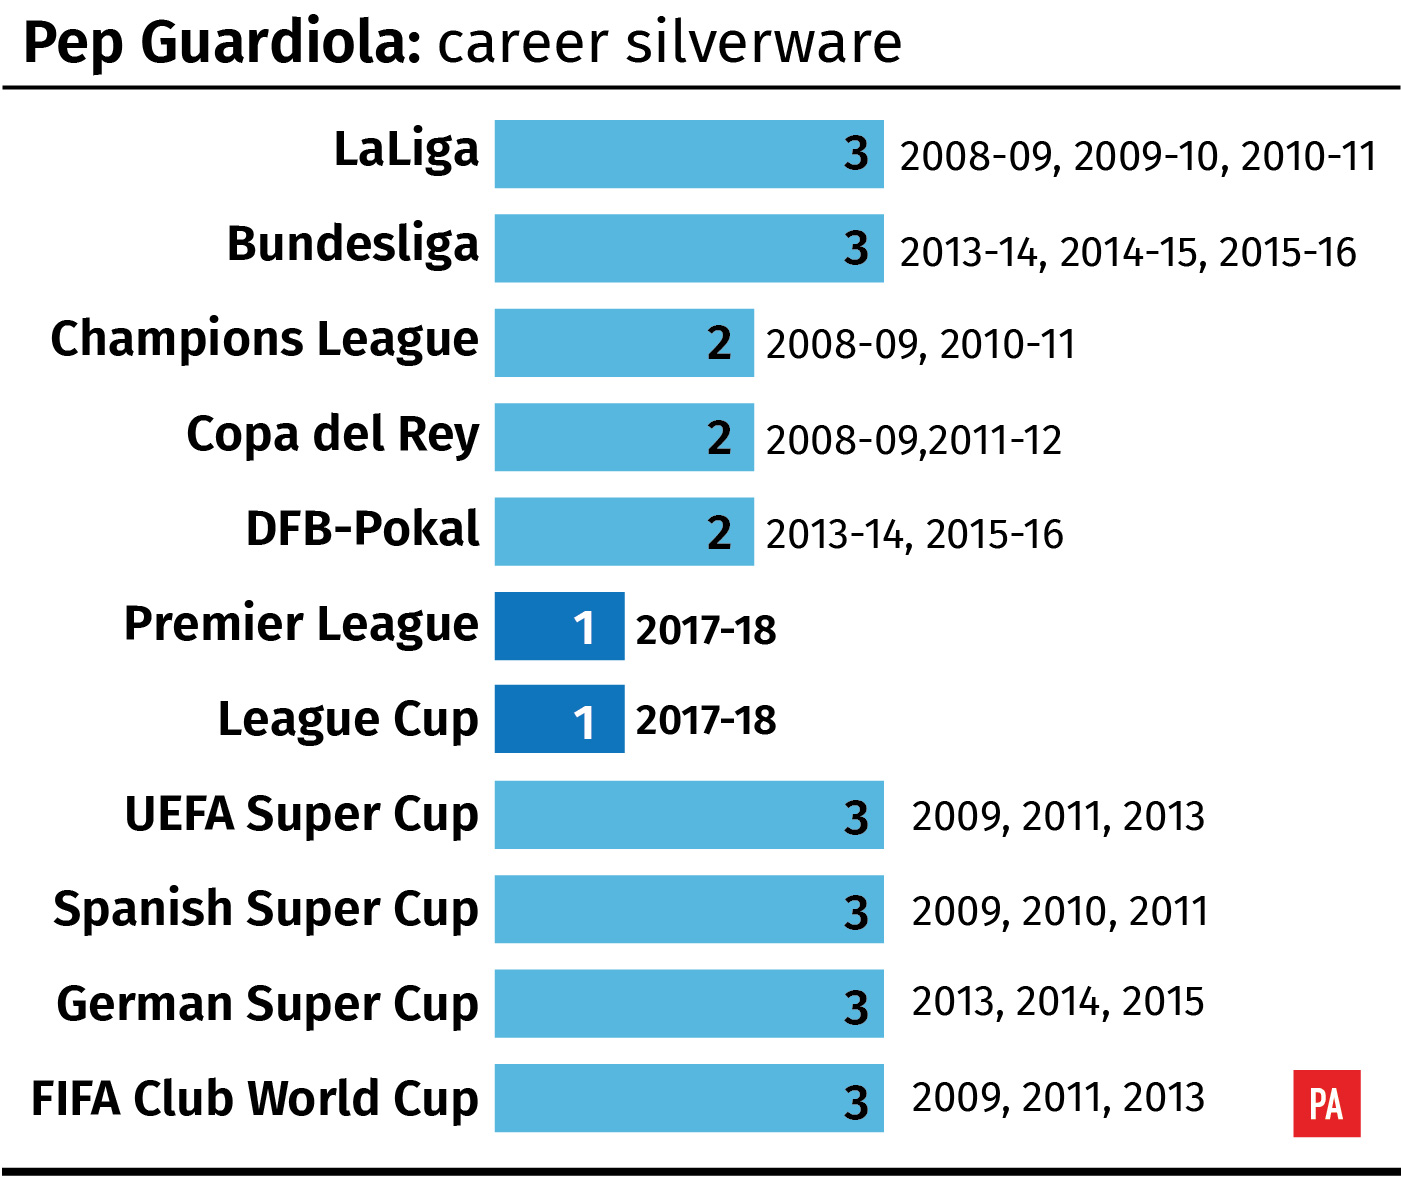 Pep Guardiola: Career trophies